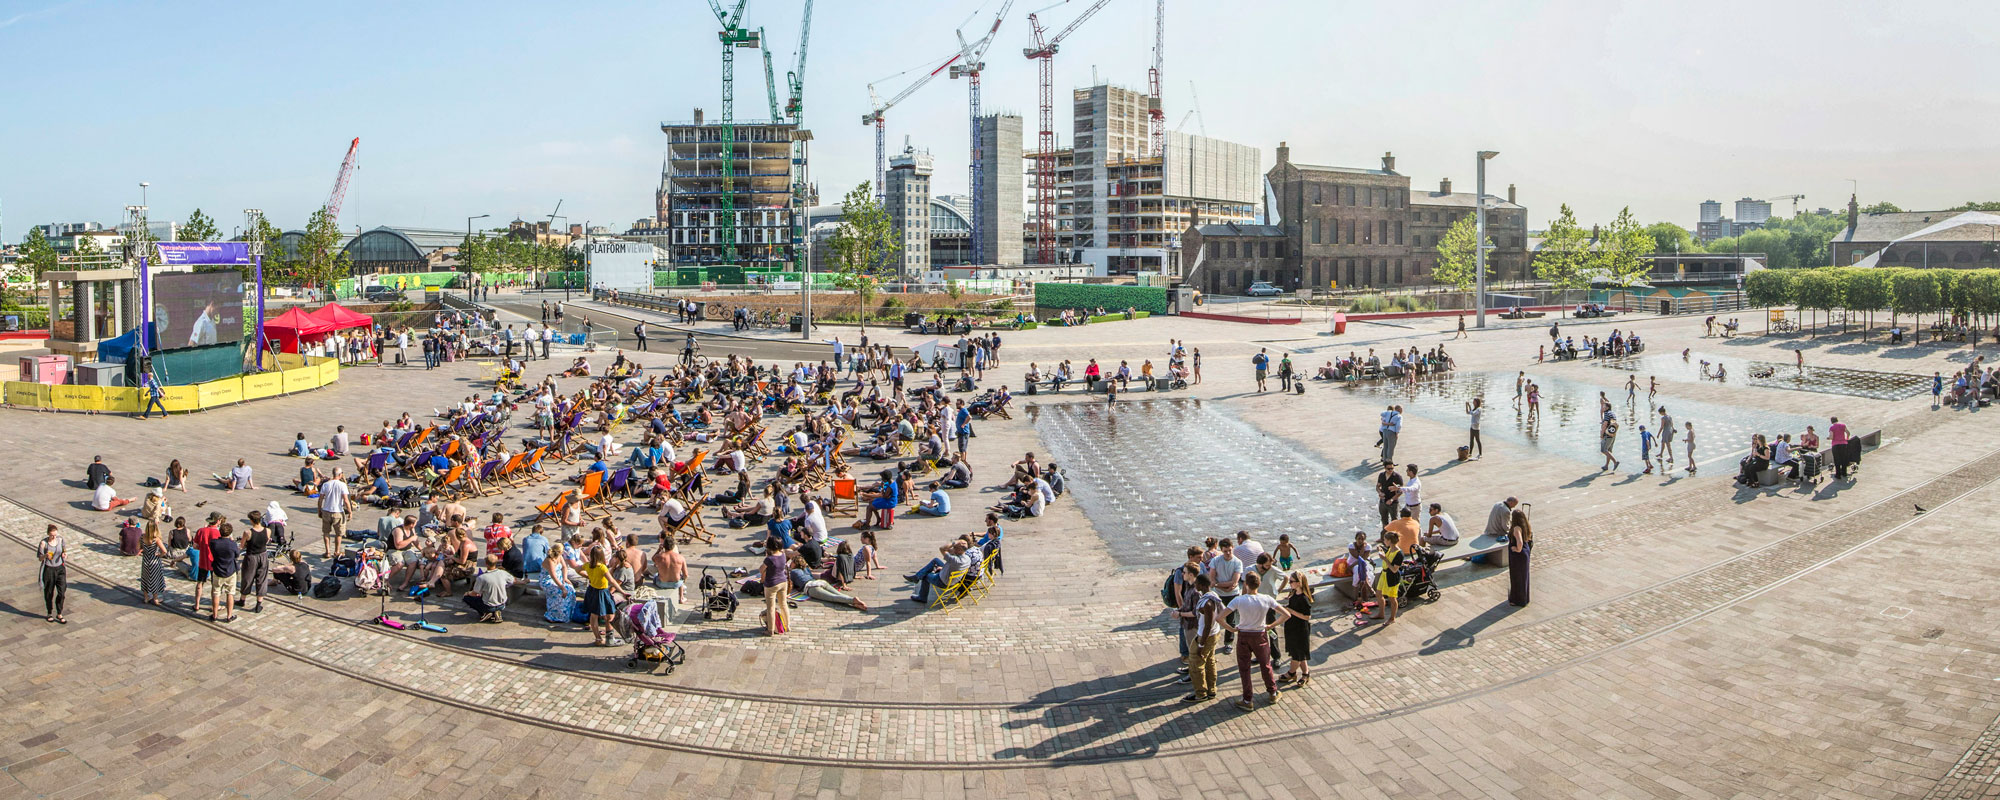 Granary Square has placed public realm at the heart of the development